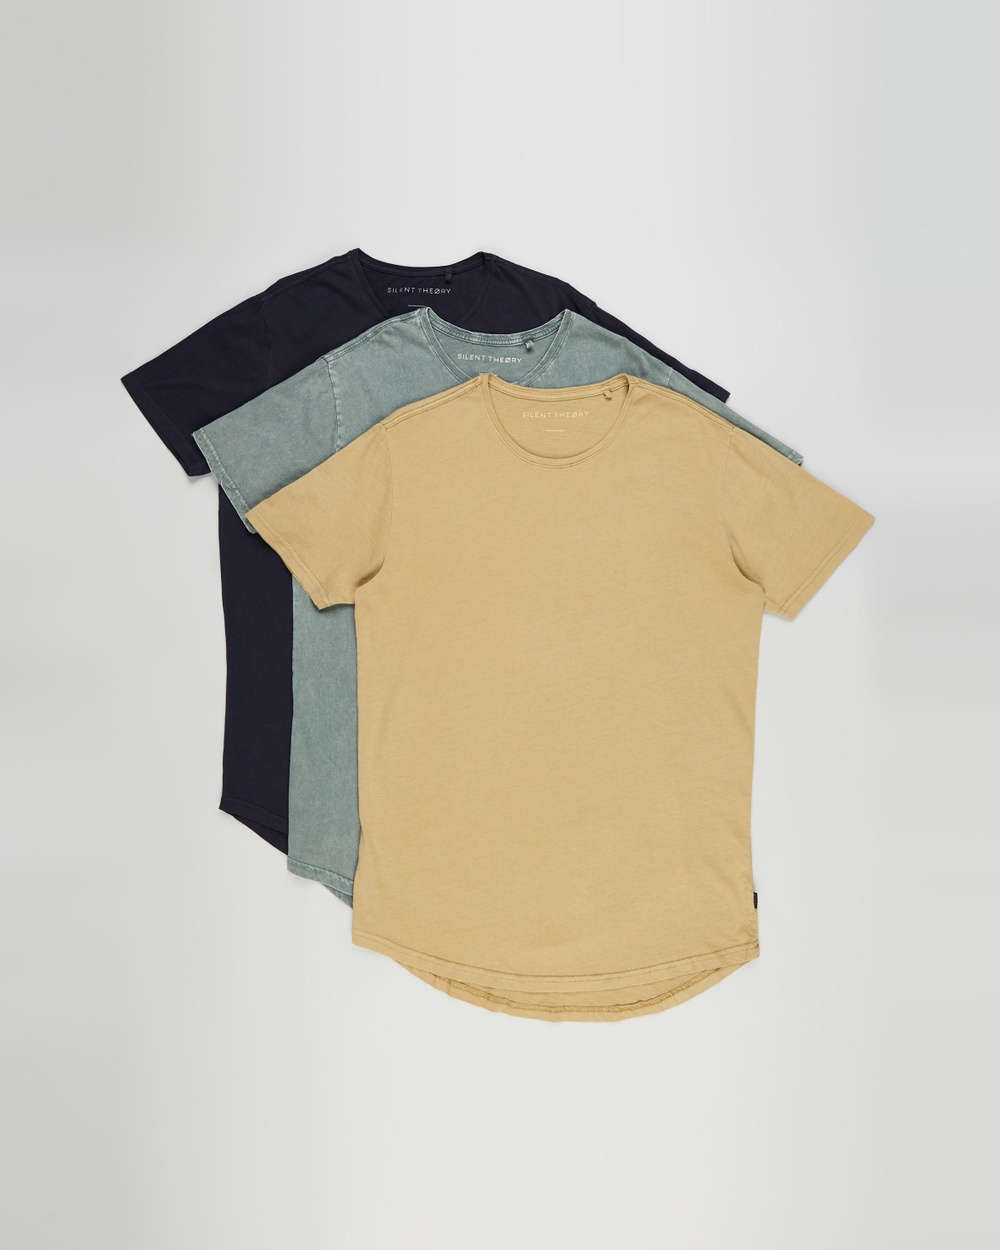 Silent Theory - Acid Tail Tee 3 Pack - T-Shirts & Singlets (Acid Green, Fern & Navy) Acid Tail Tee 3-Pack